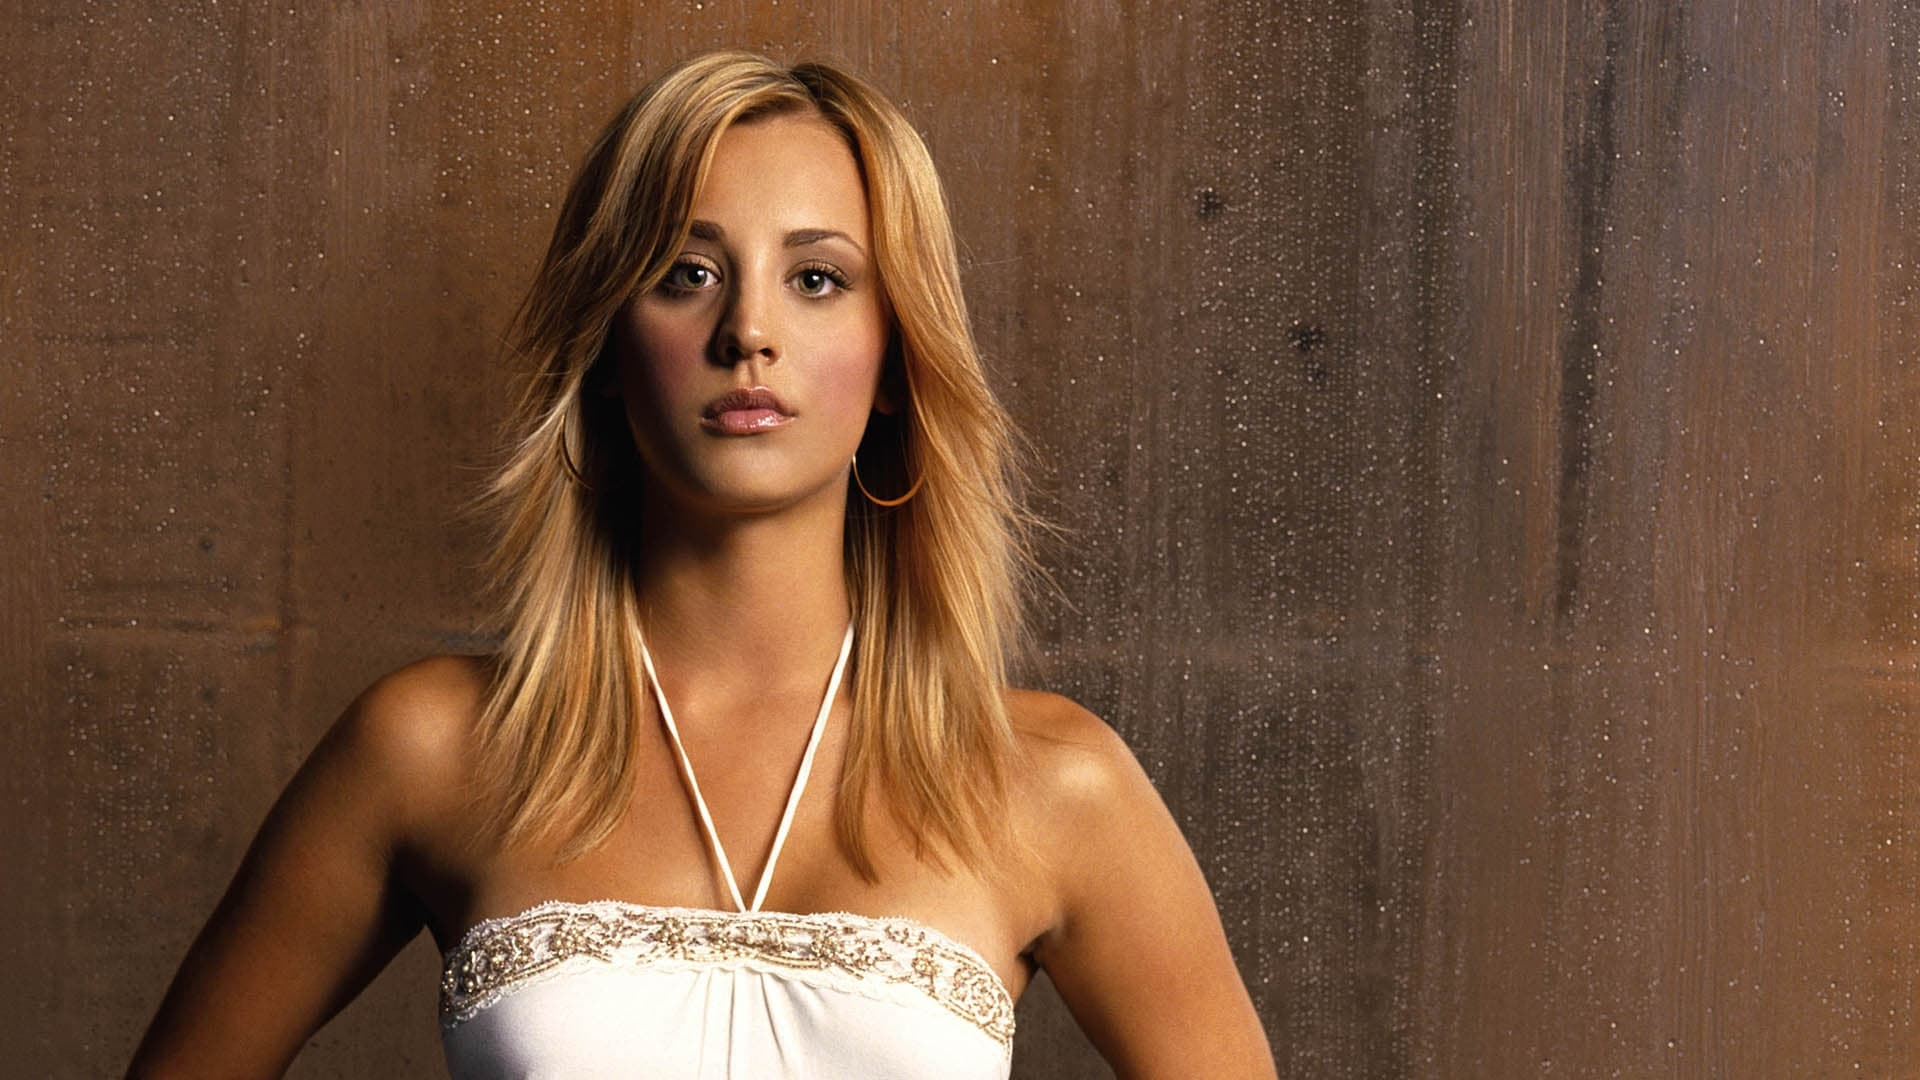 Wallpapers Of Girls 20 Kaley Cuoco Wallpapers High Quality Download